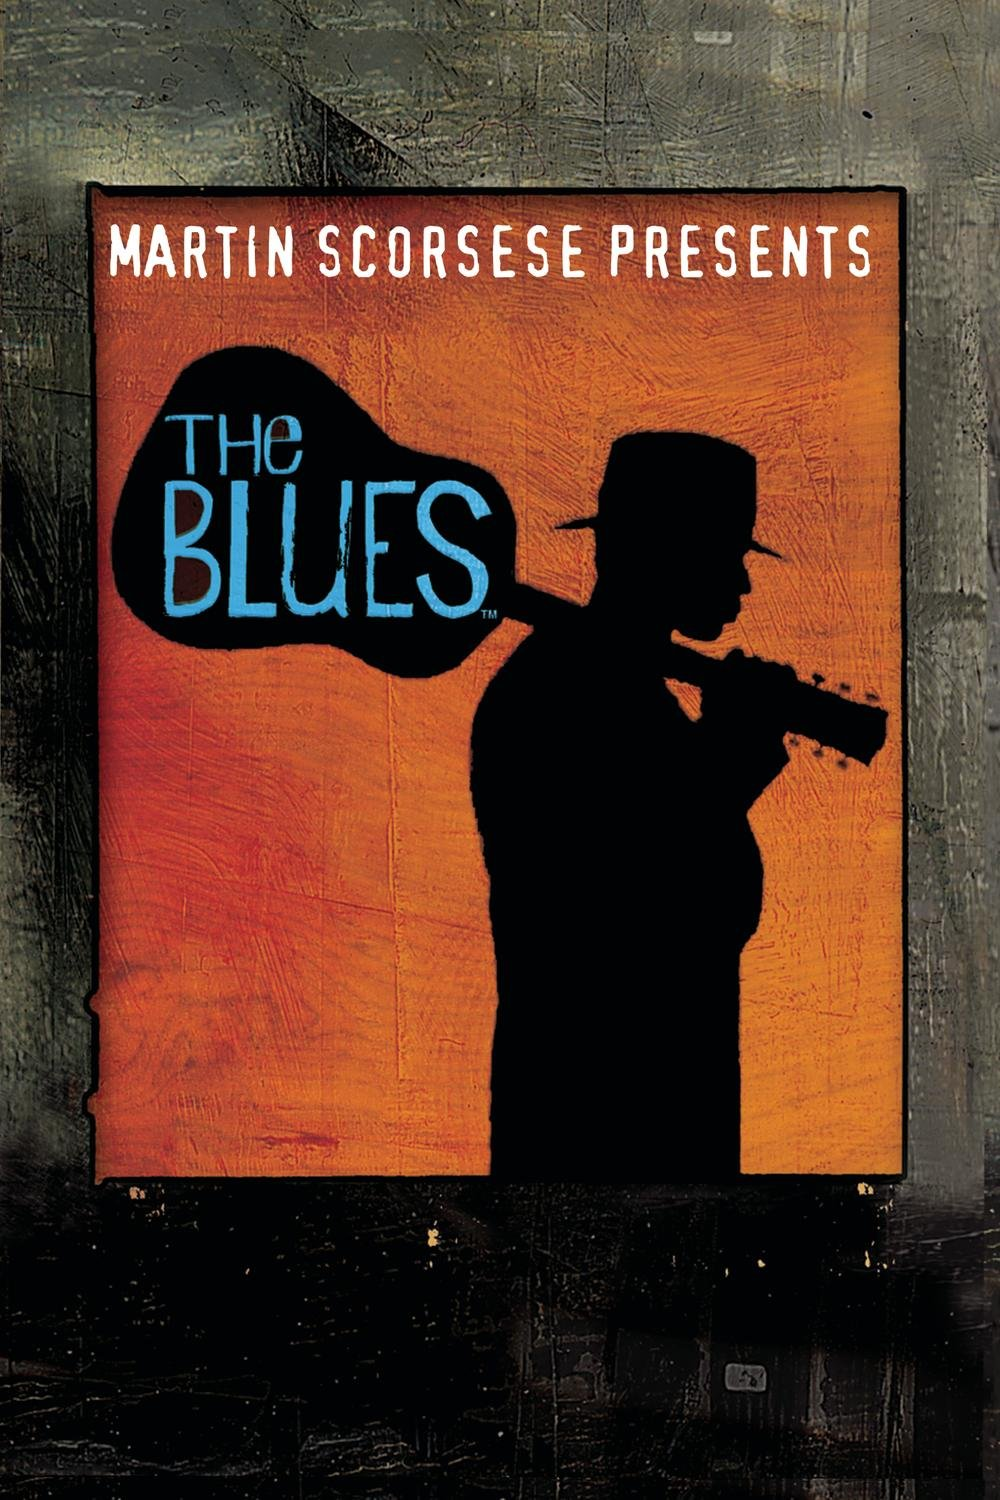 Martin Scorsese presents The Blues - A Musical